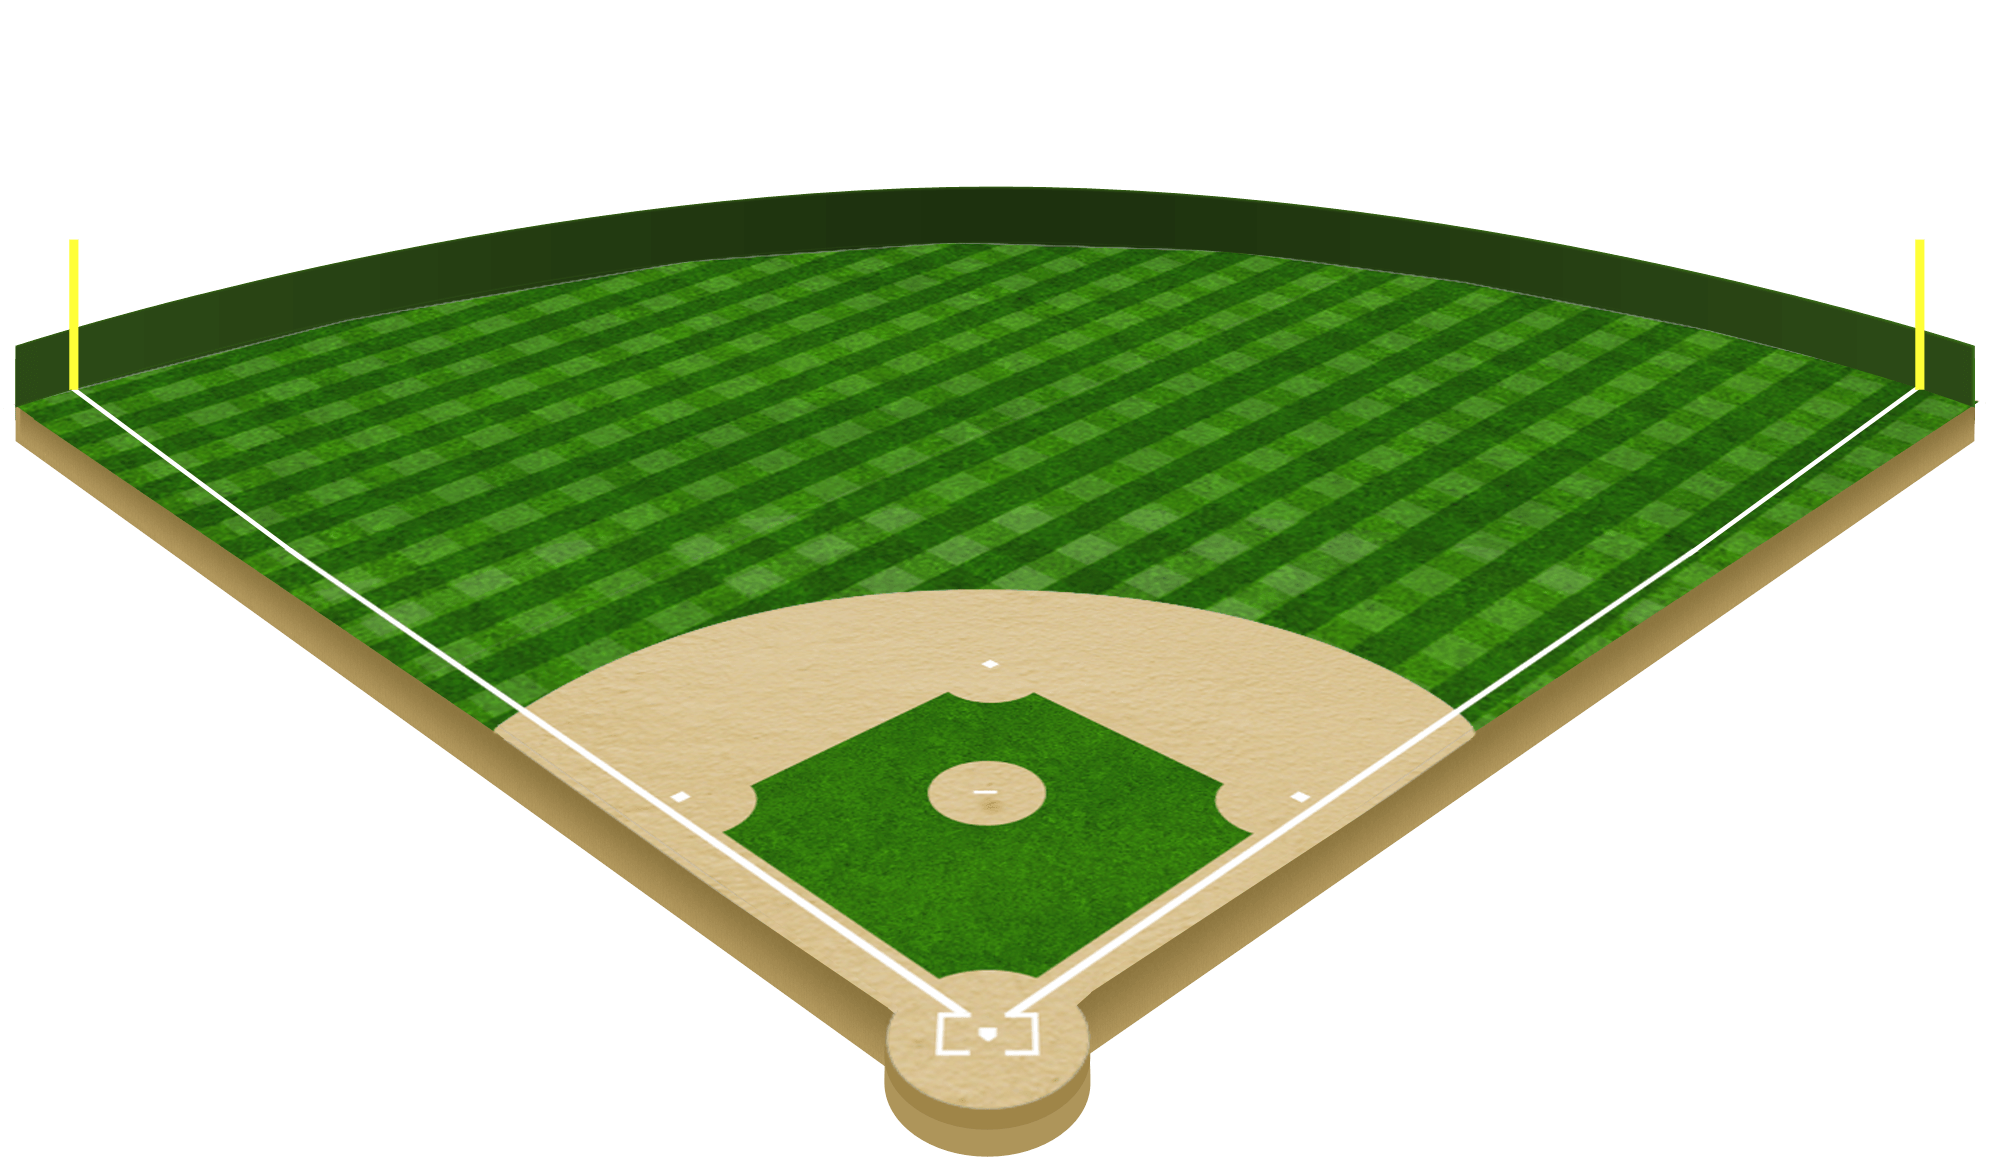 Baseball Diamond Image Royalty Free